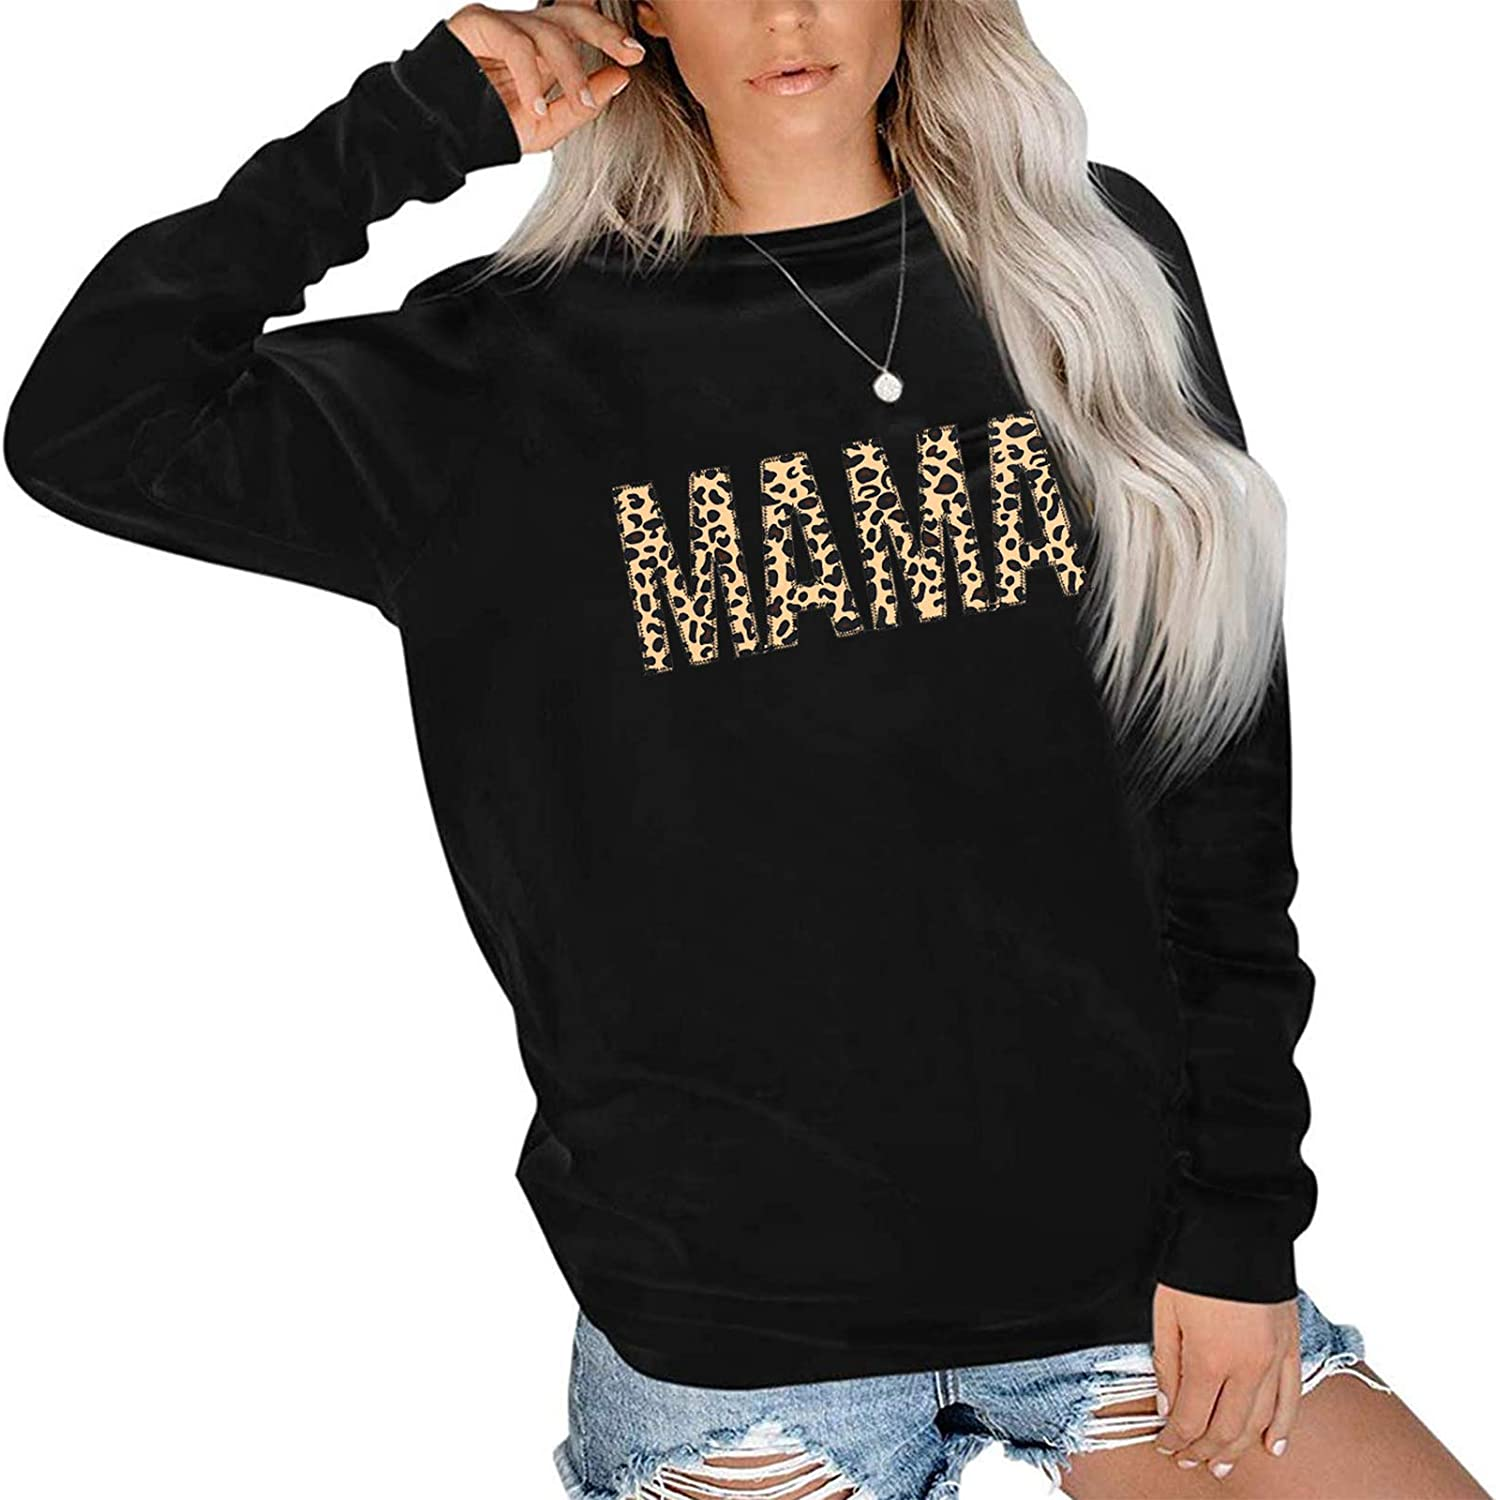 Mama Sweatshirt Women Cute Leopard Funny Letter Print Mom Blouse Tops Casual Long Sleeve Vacation Shirts Tops